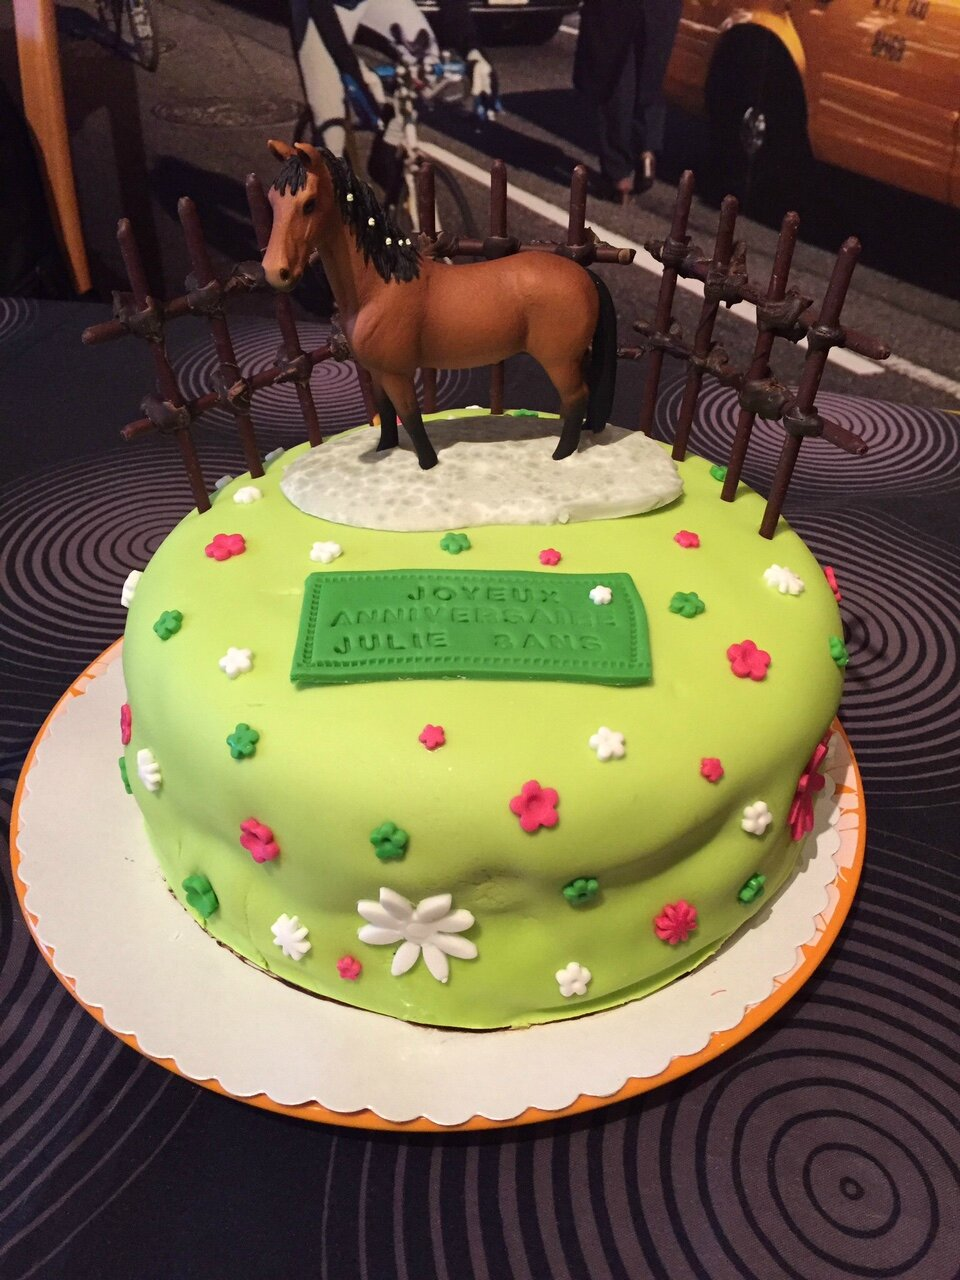 Decoration gateau anniversaire cheval id es de for Decoration gateau pate a sucre